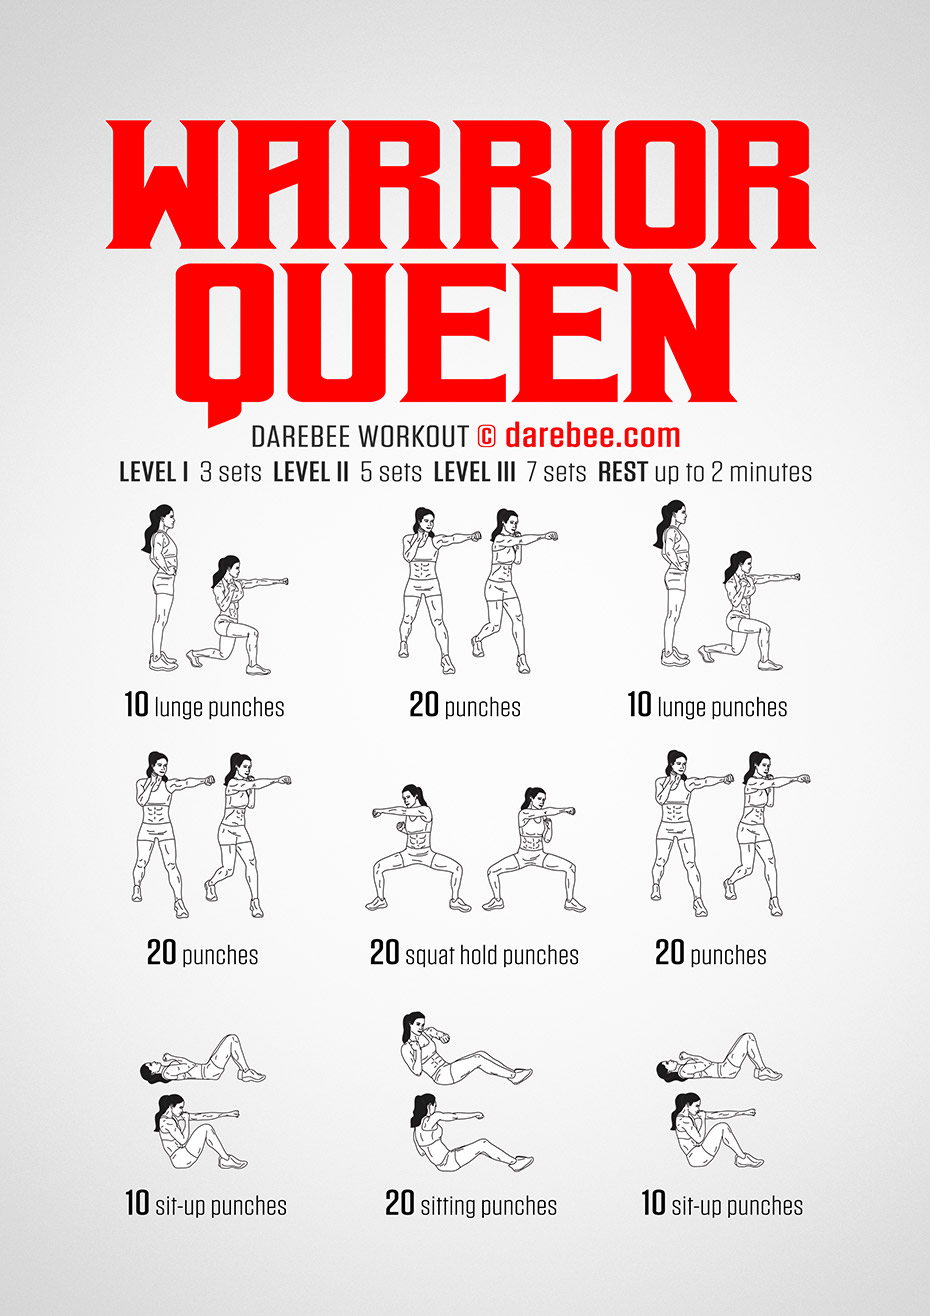 Warrior Queen Workout by #DAREBEE #workout #fitness #abs #abworkout #abs #squats #squatsworkout #wor...